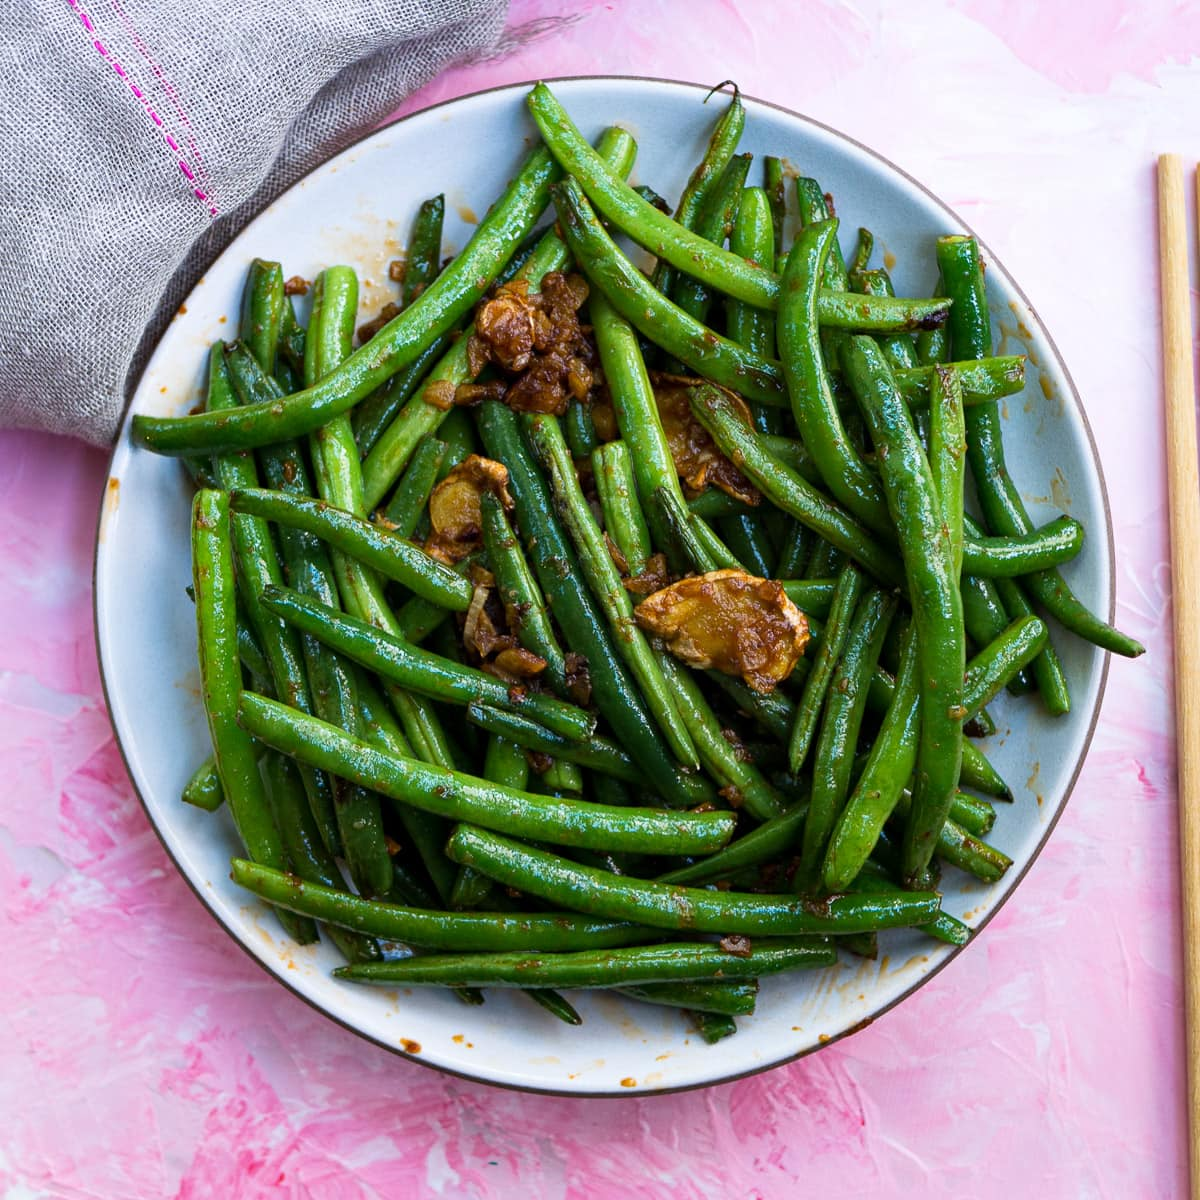 Mouthwatering Garlic and Ginger Green Beans Stir Fry With Chili Sauce